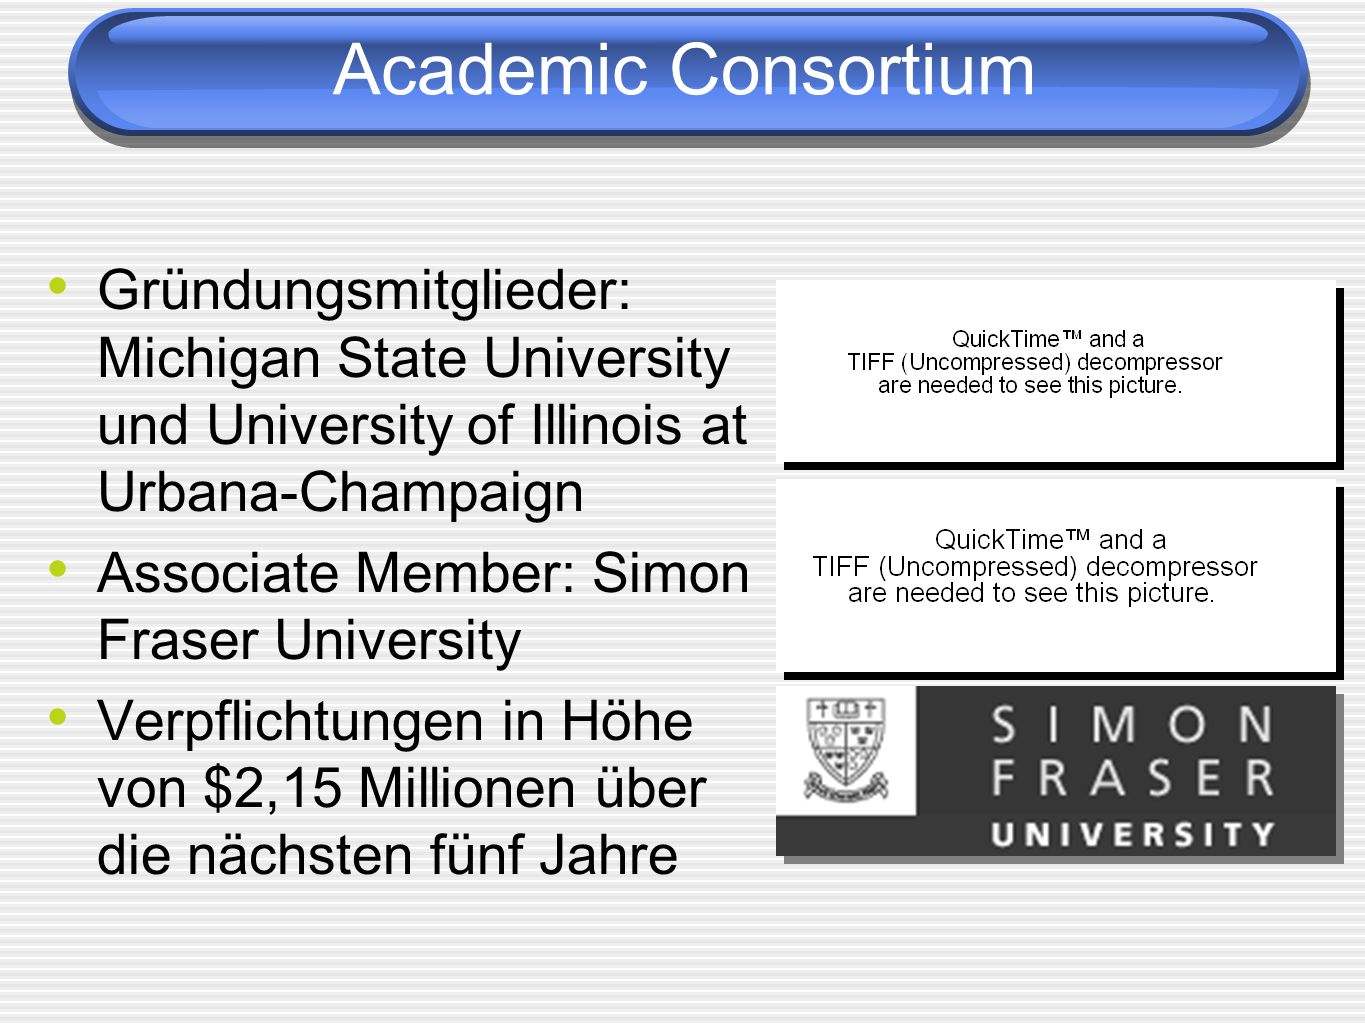 Academic Consortium Gründungsmitglieder: Michigan State University und University of Illinois at Urbana-Champaign.